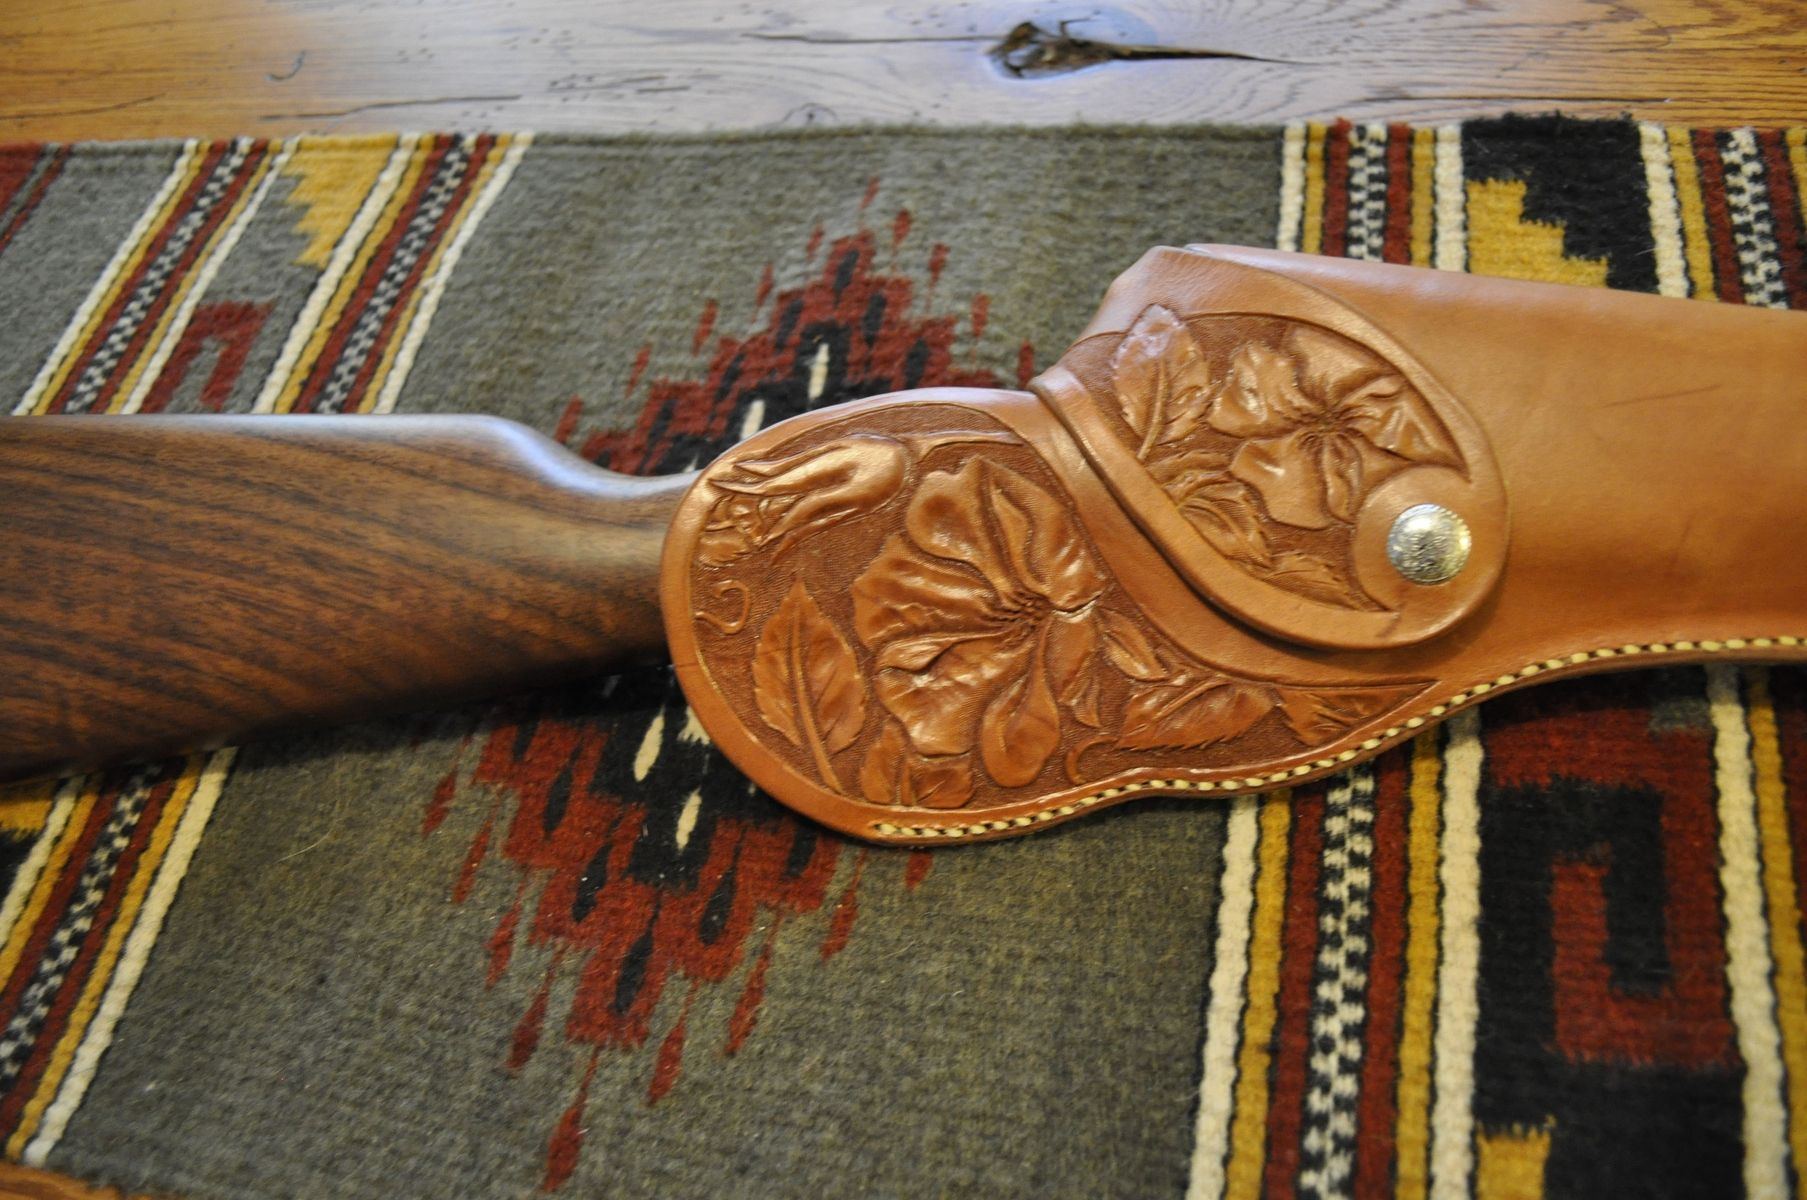 Hand Made Leather Rifle And Gun Scabbards And Sheaths By